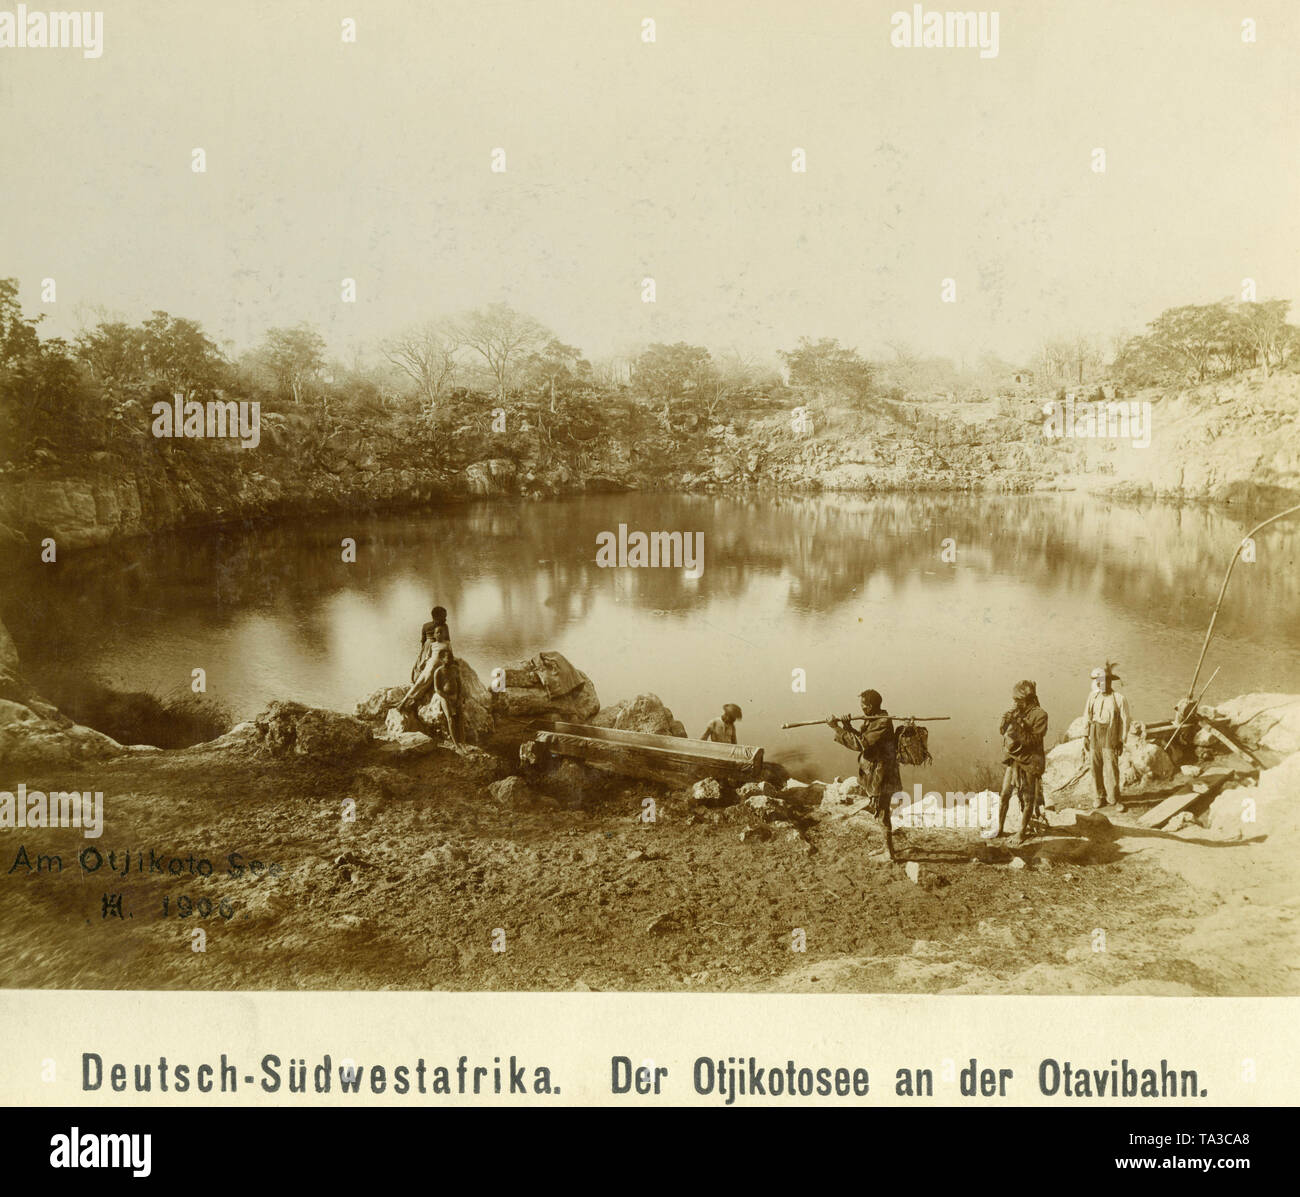 Boys and girls in some European clothing at the Otjikoto Lake in German Southwest Africa. Stock Photo